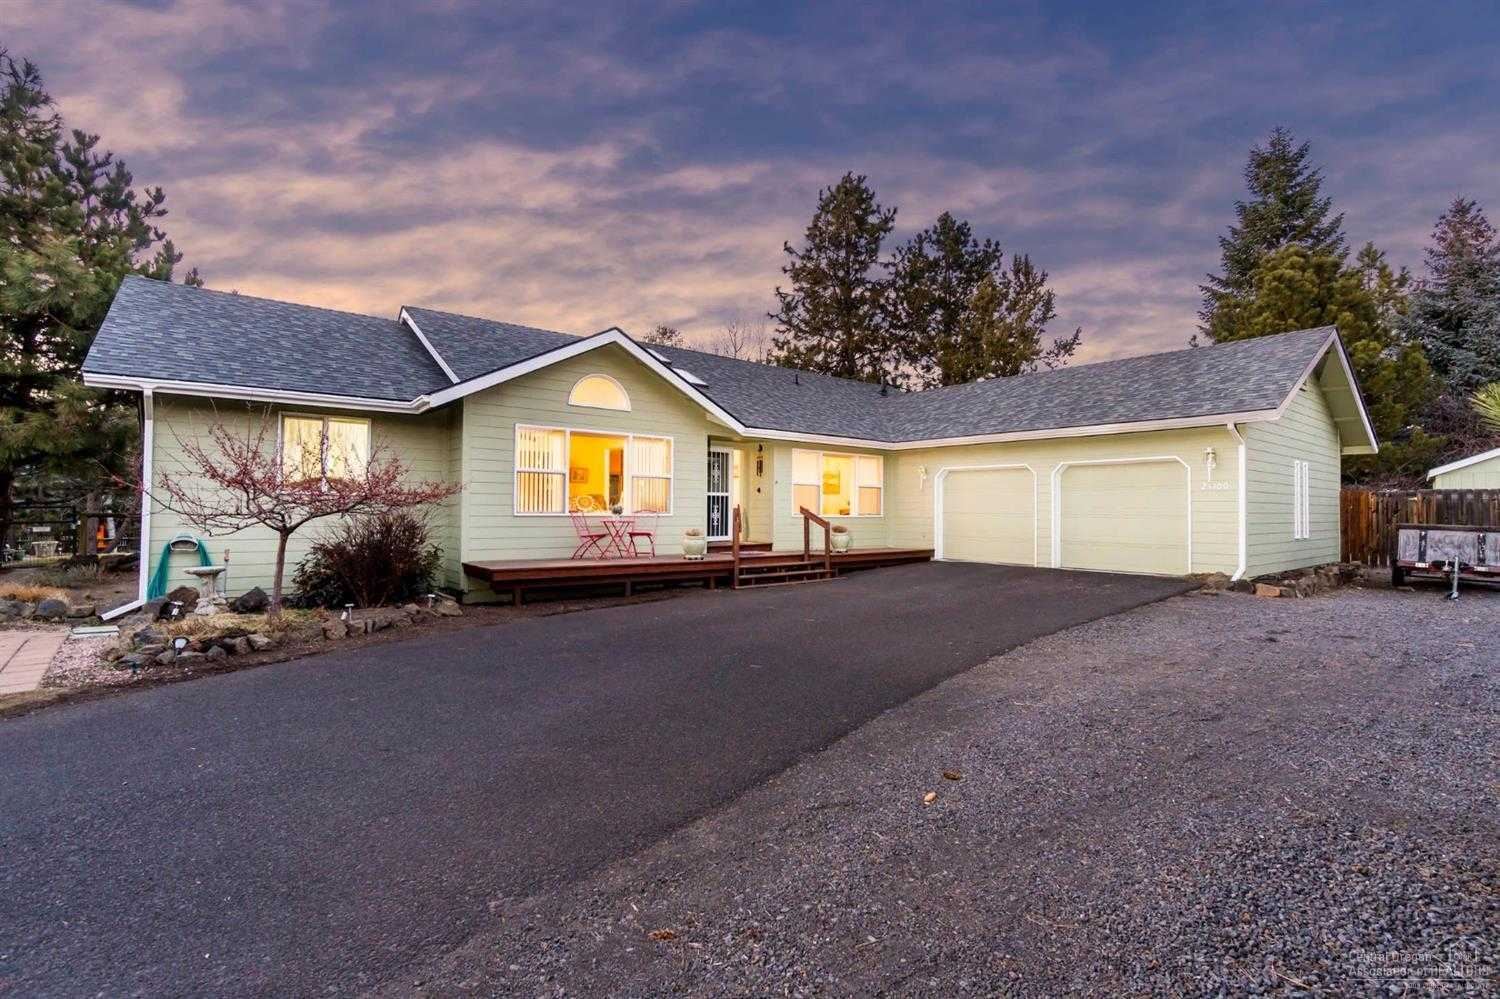 $478,000 - 3Br/2Ba -  for Sale in Bend